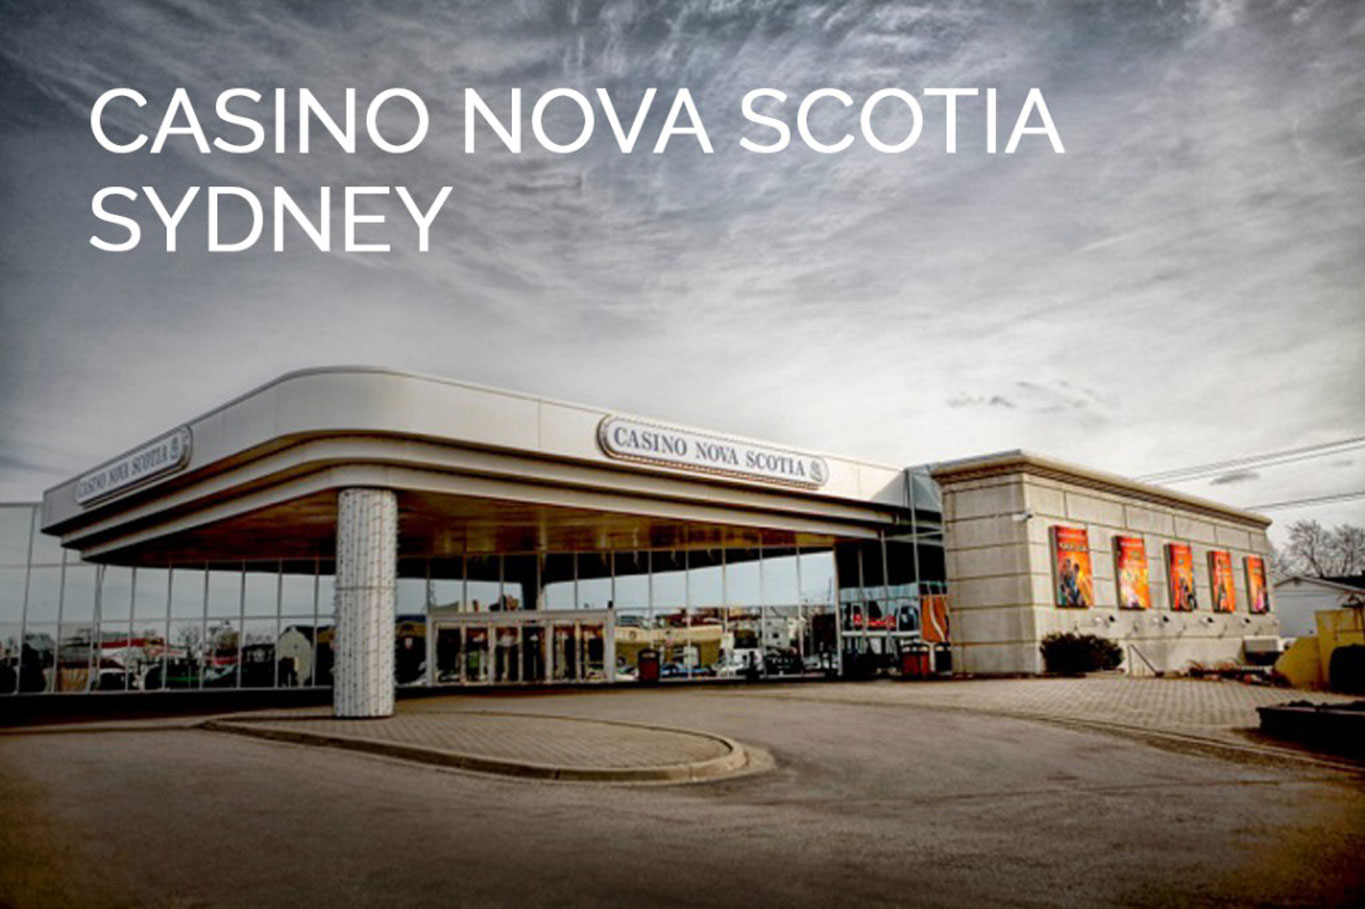 Casino nova scotia sydney poker online blackjack free money no deposit